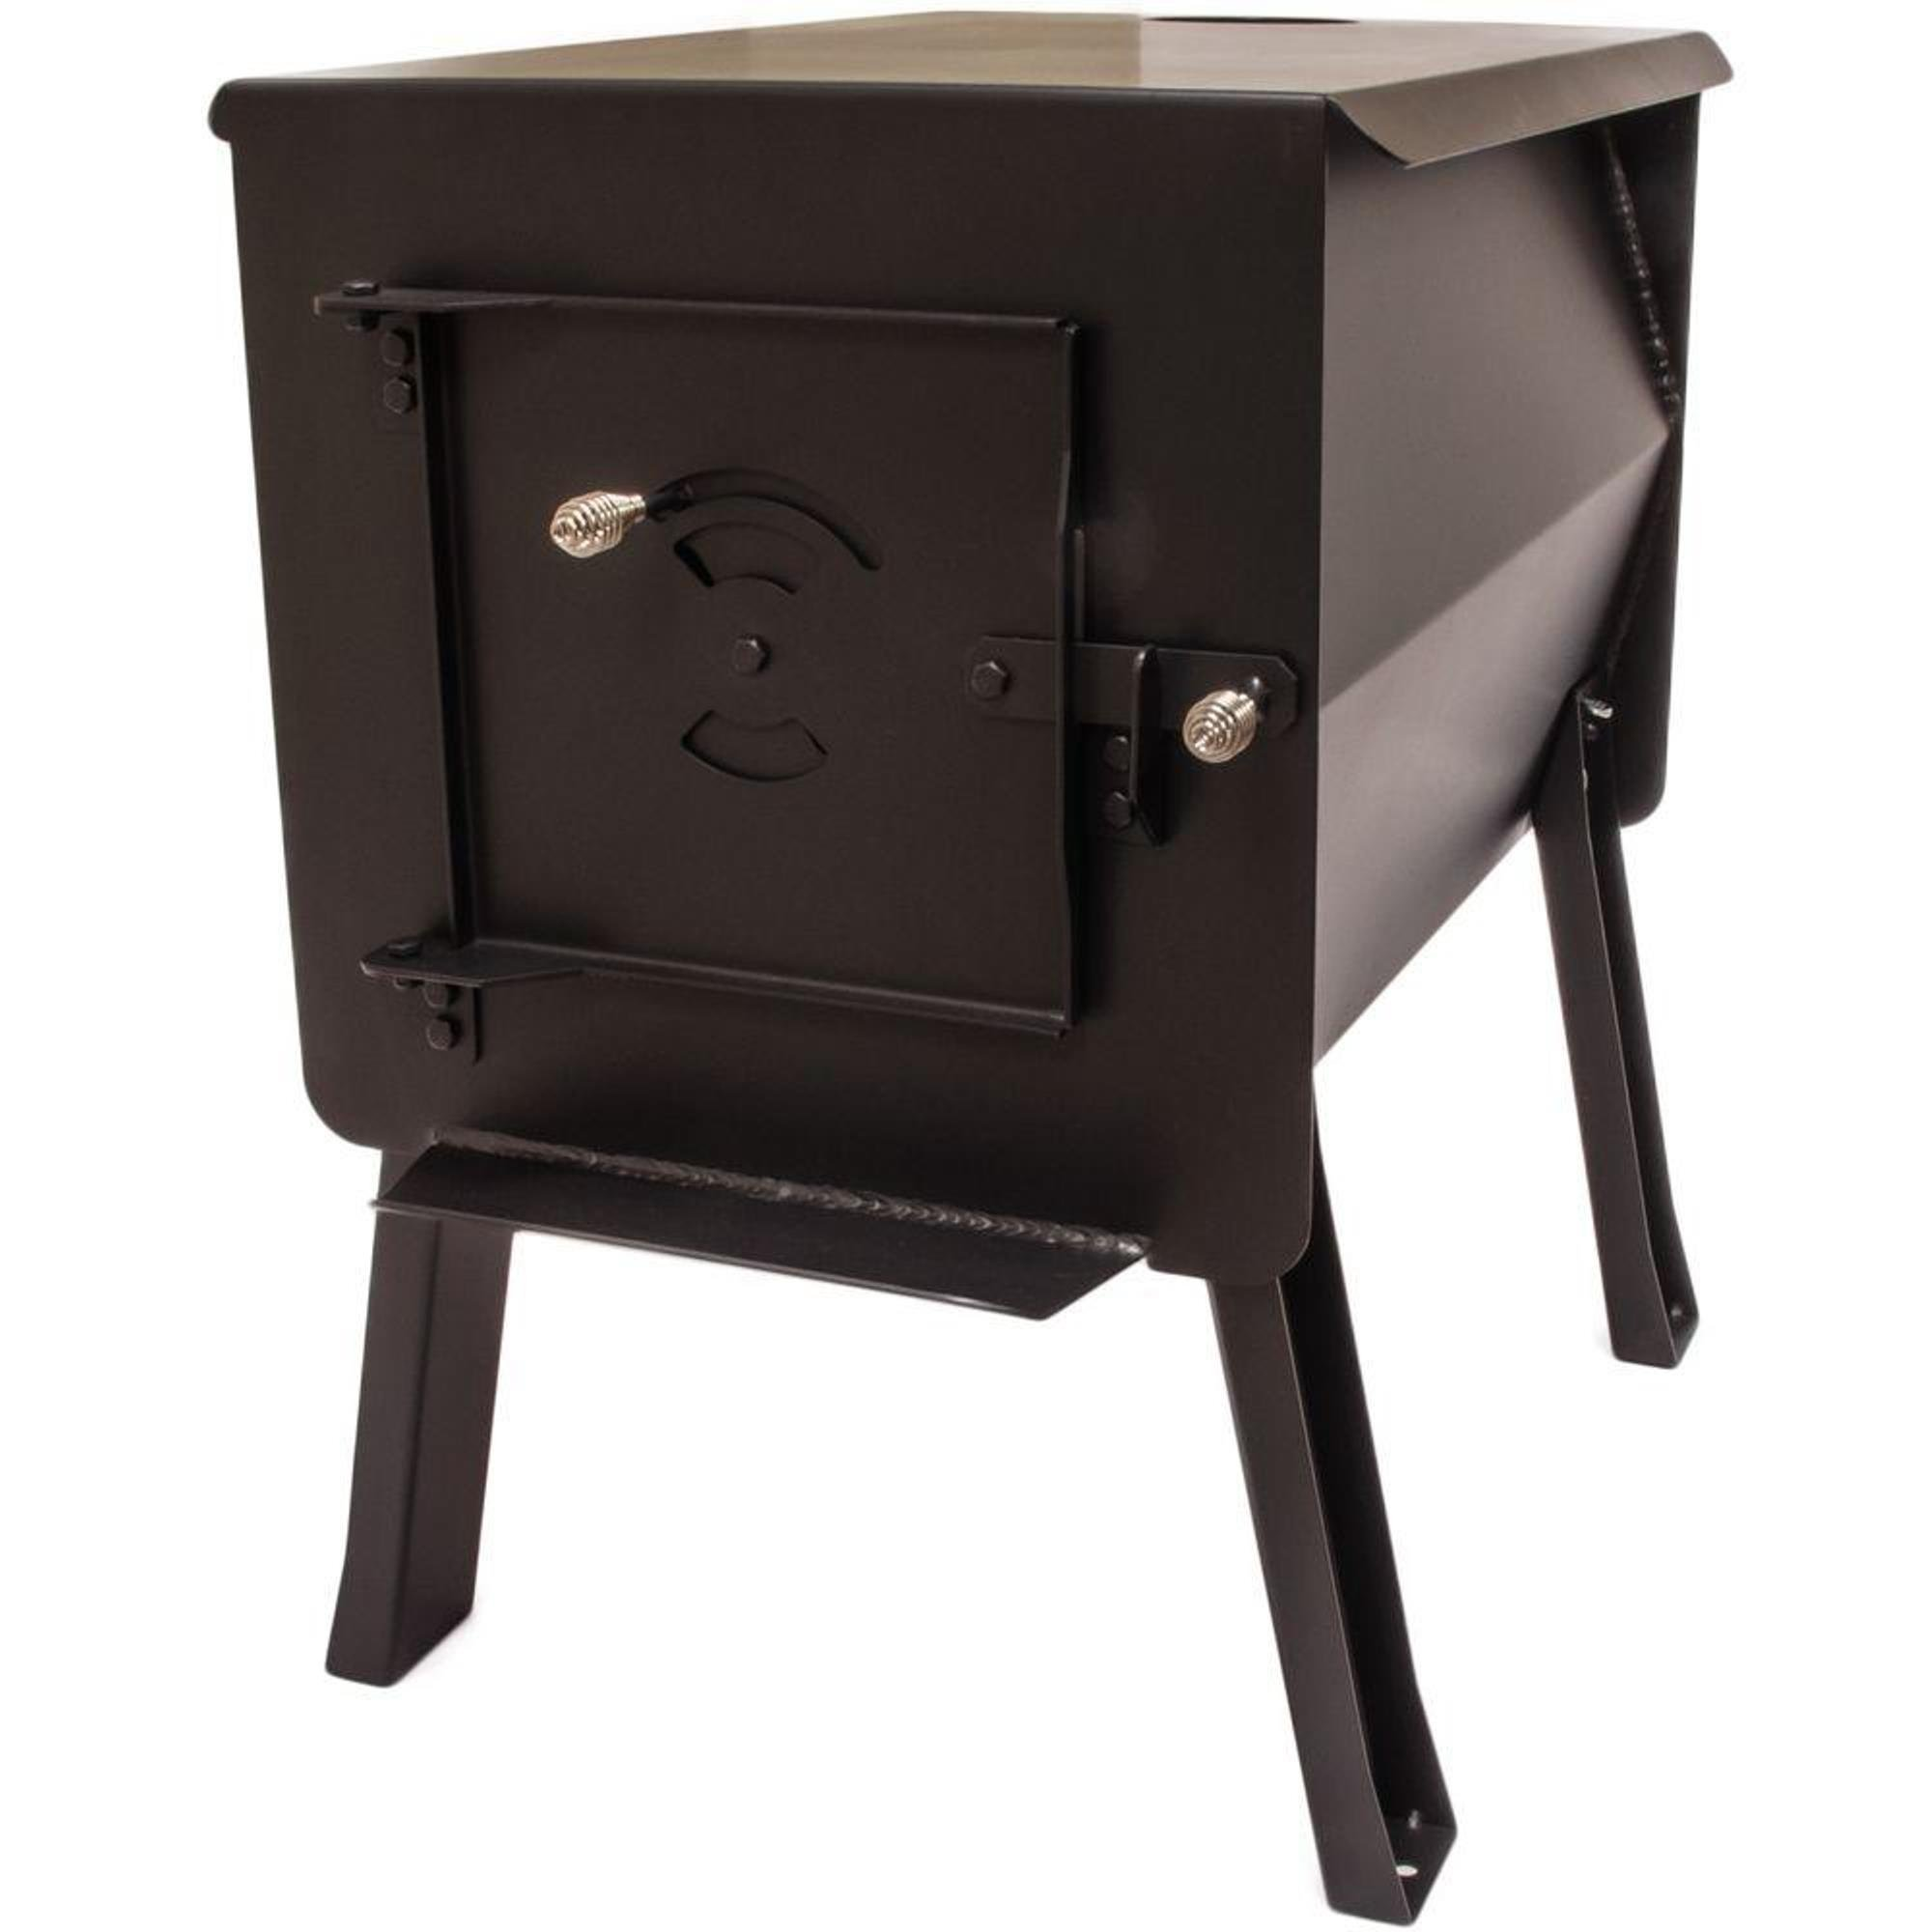 England's Stove WorksSurvivor 12-CSL  ''Grizzly'' Portable Camp/Cook Wood Stove 2.7 Cubic Feet by England's Stove Works